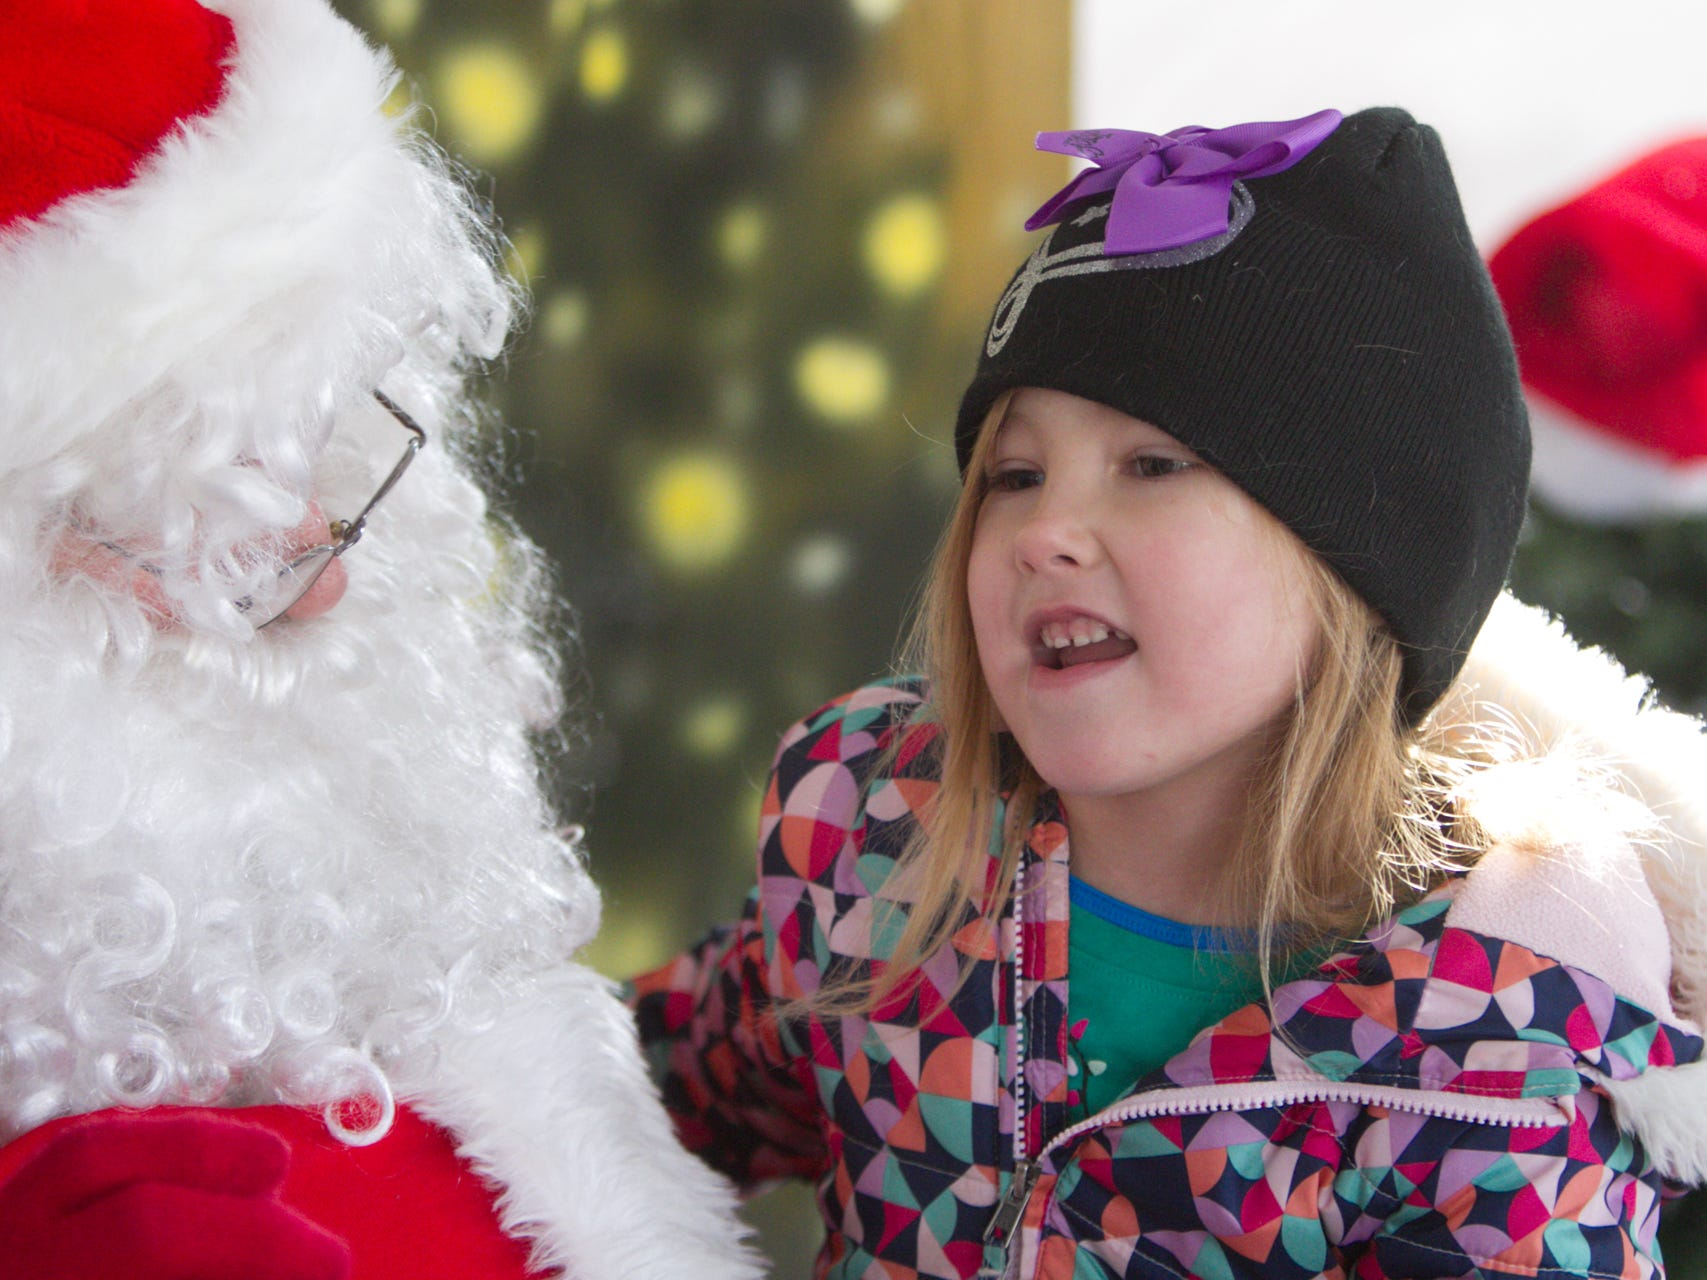 5-year-old Adelyn Heinsch tells Santa she wants a puppy for Christmas at Hartland's Polar Express Day Saturday, Dec. 8, 2018.